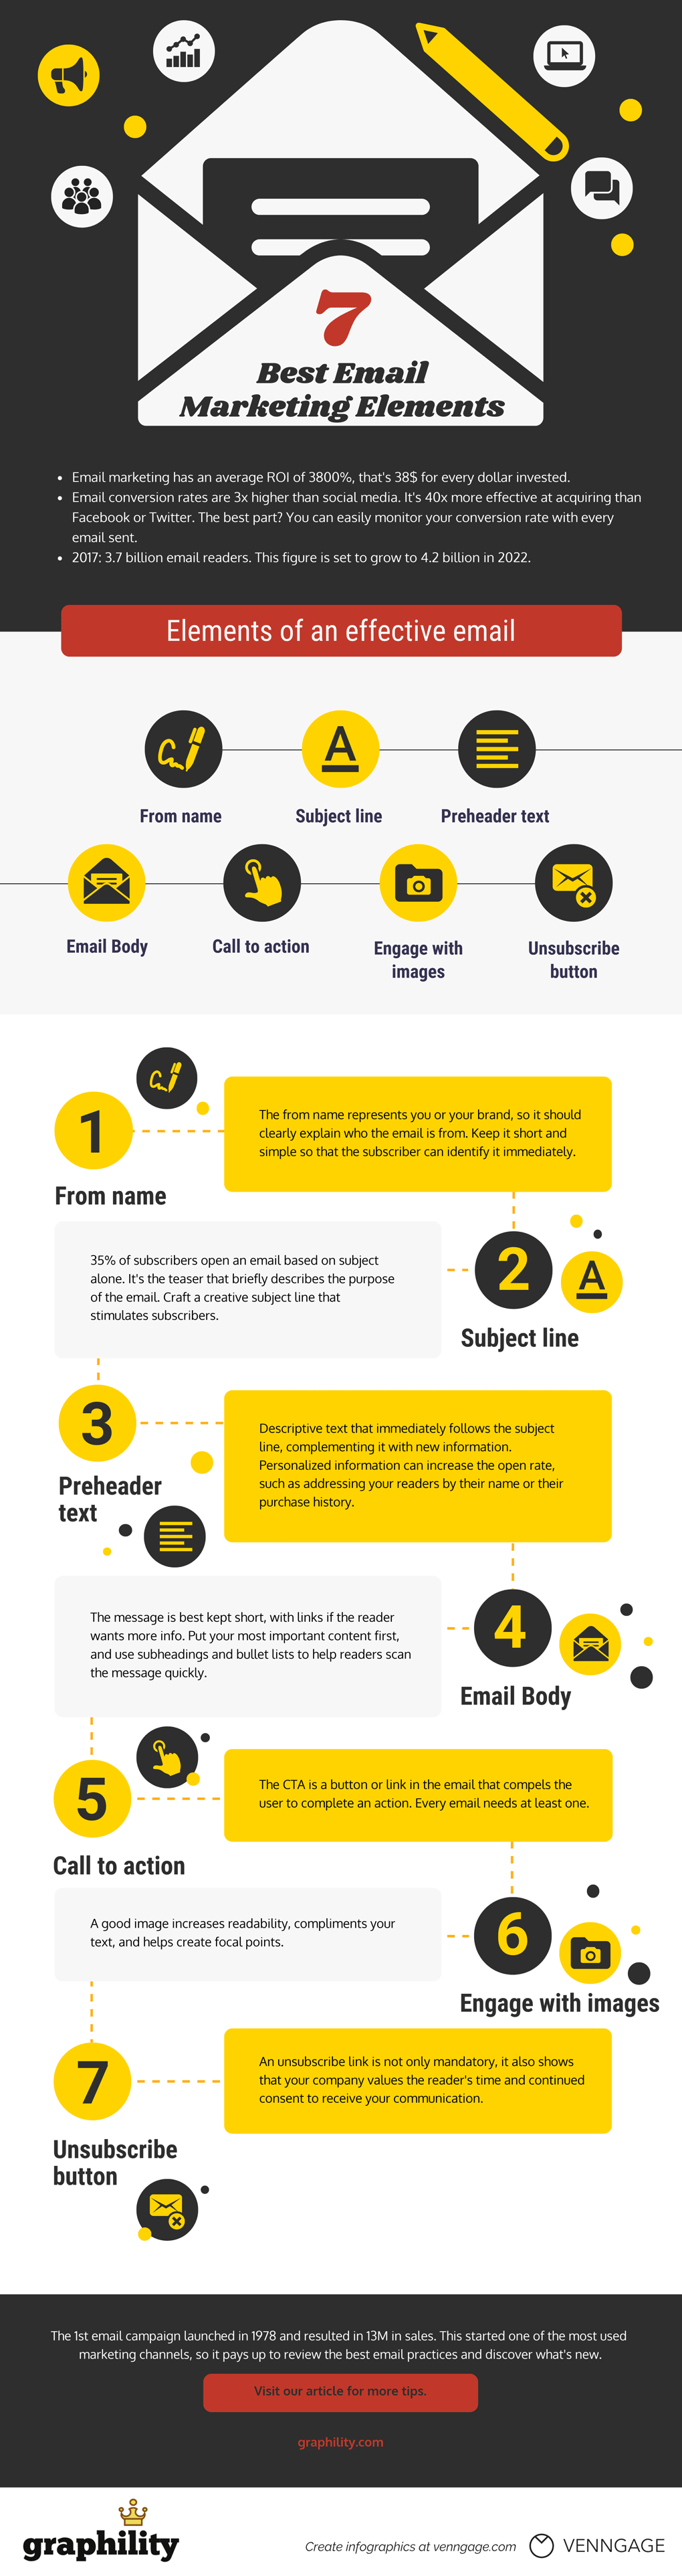 Infographic on 7 best email marketing elements: The 7 elements of an effective email are from name, subject line, preheader text, email body, call to action, engage with images, unsubscribe button